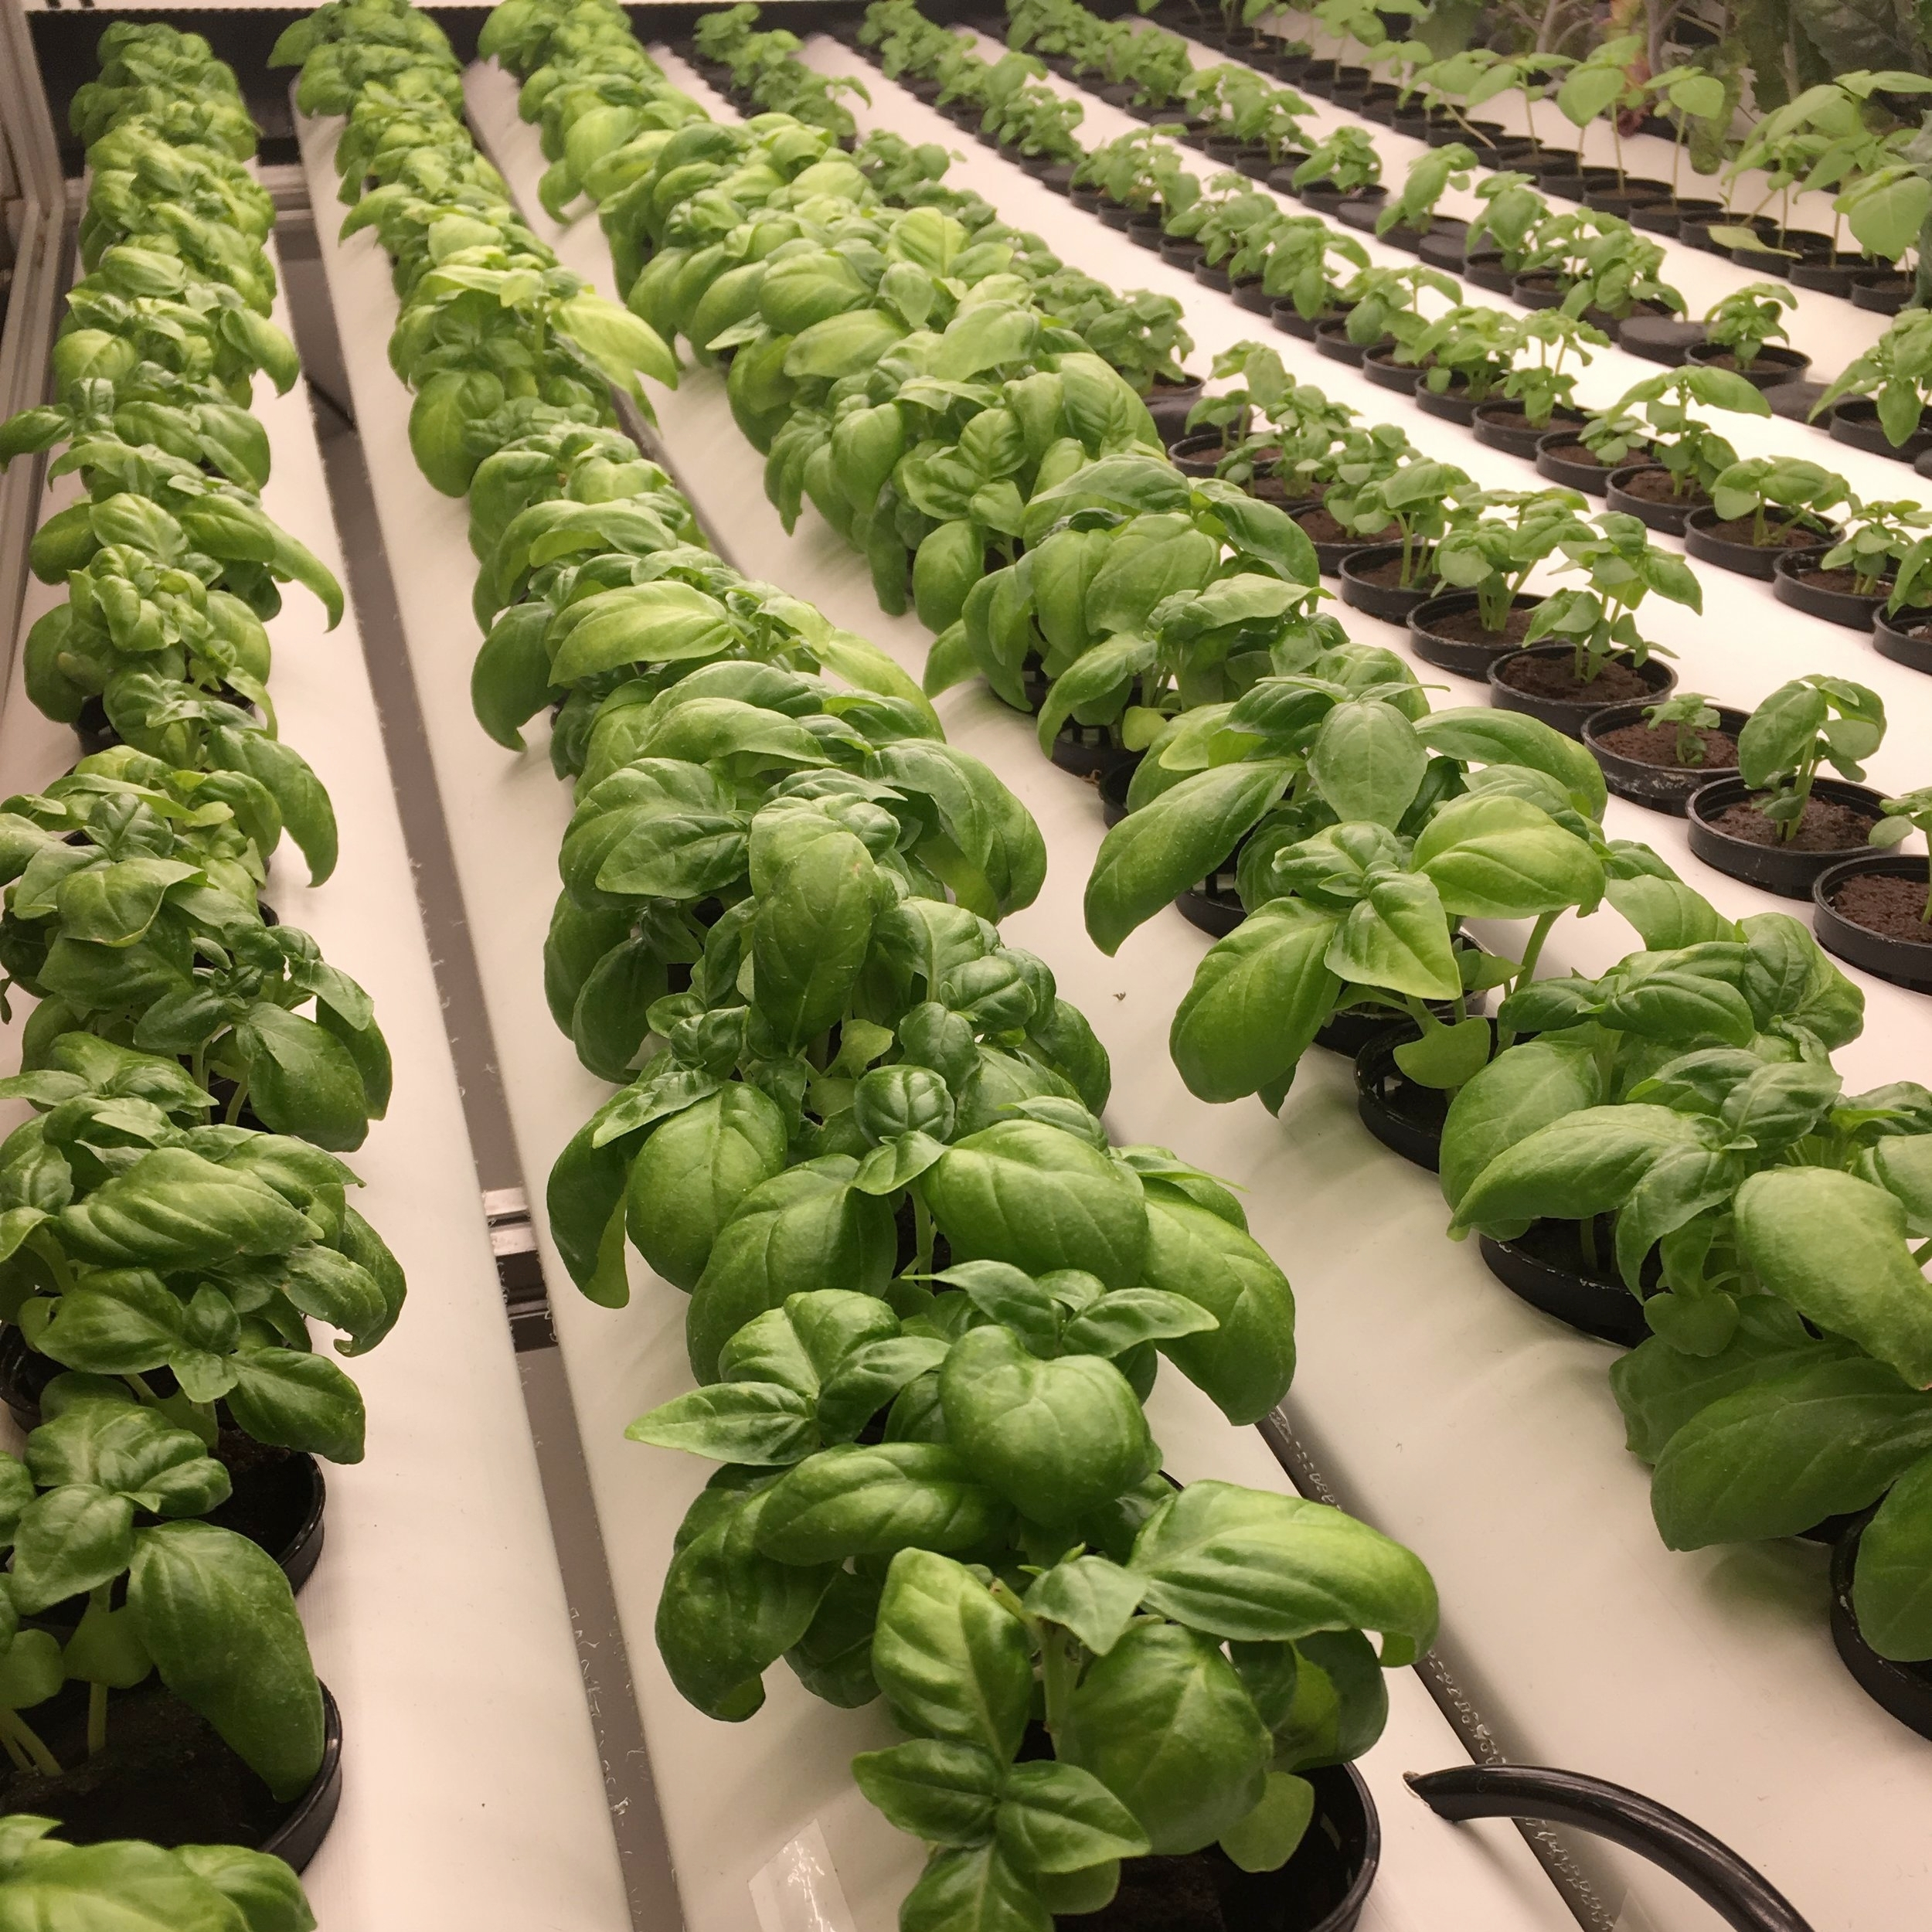 This hydroponically grown basil has never touched soil or seen sunlight. | Image Source: @plantnasty